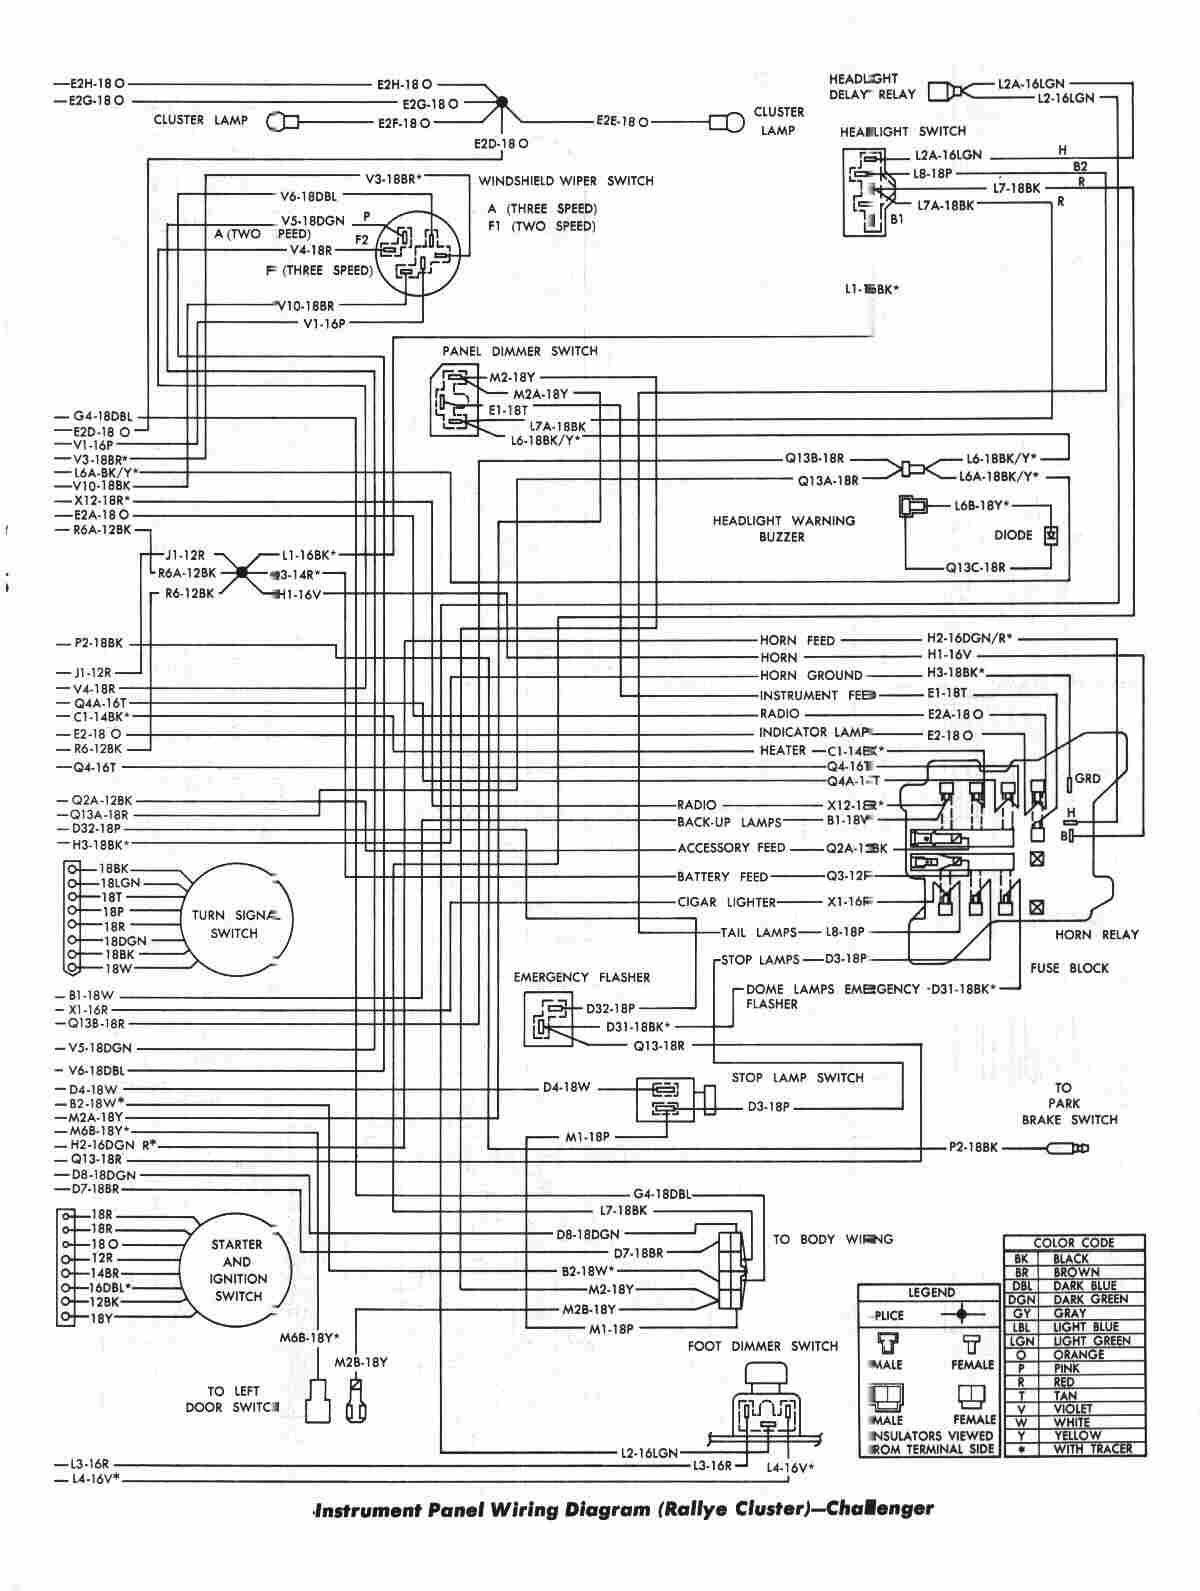 Plc Panel Wiring Diagram - bookingritzcarlton.info | 2012 dodge charger,  Diagram, DodgePinterest